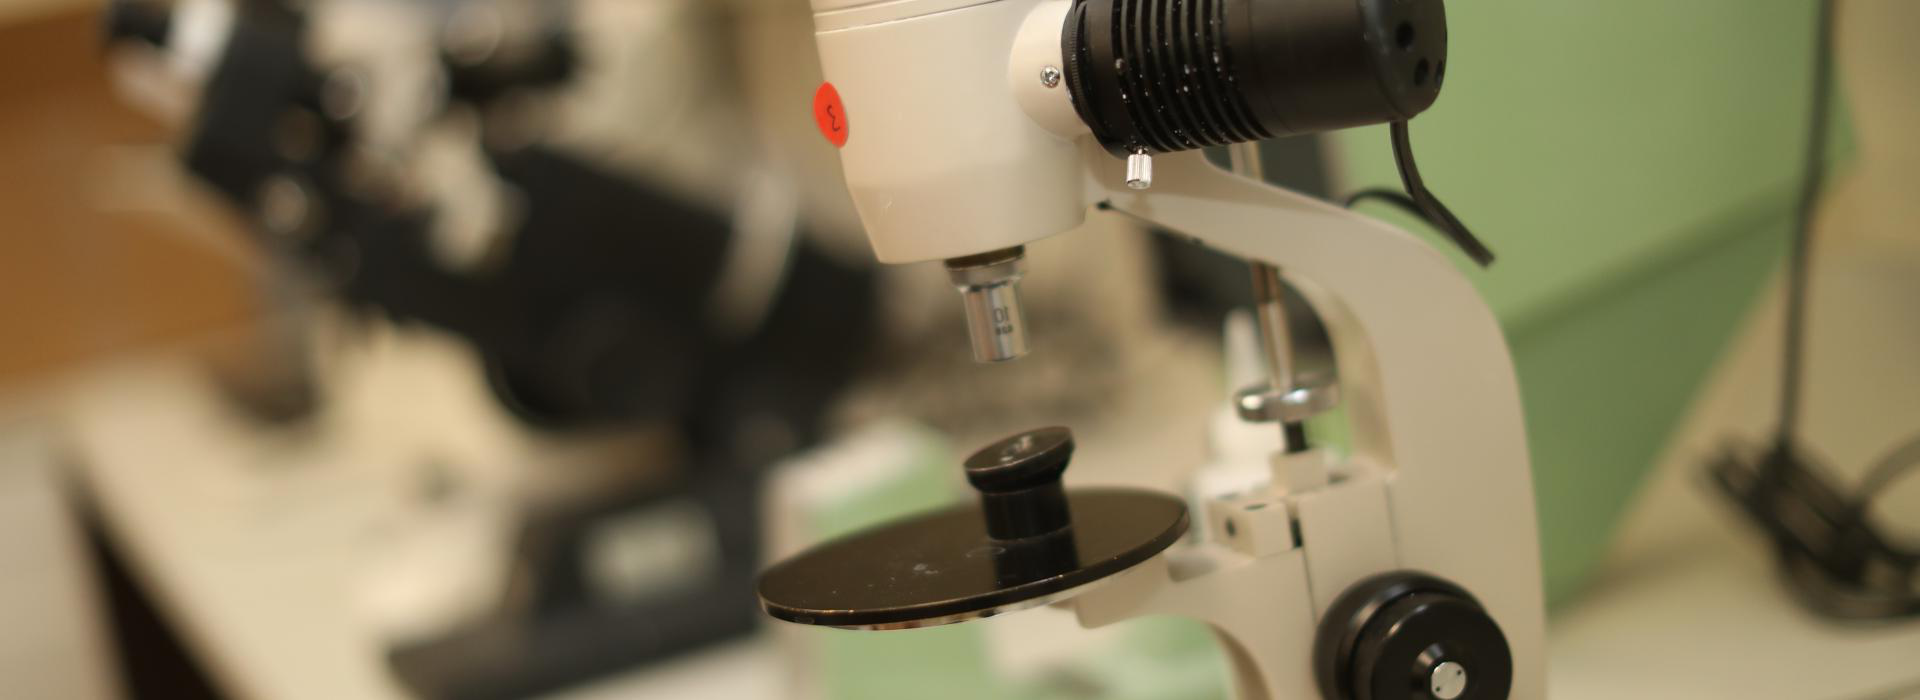 Closeup of microscopes in clinical optometry lab